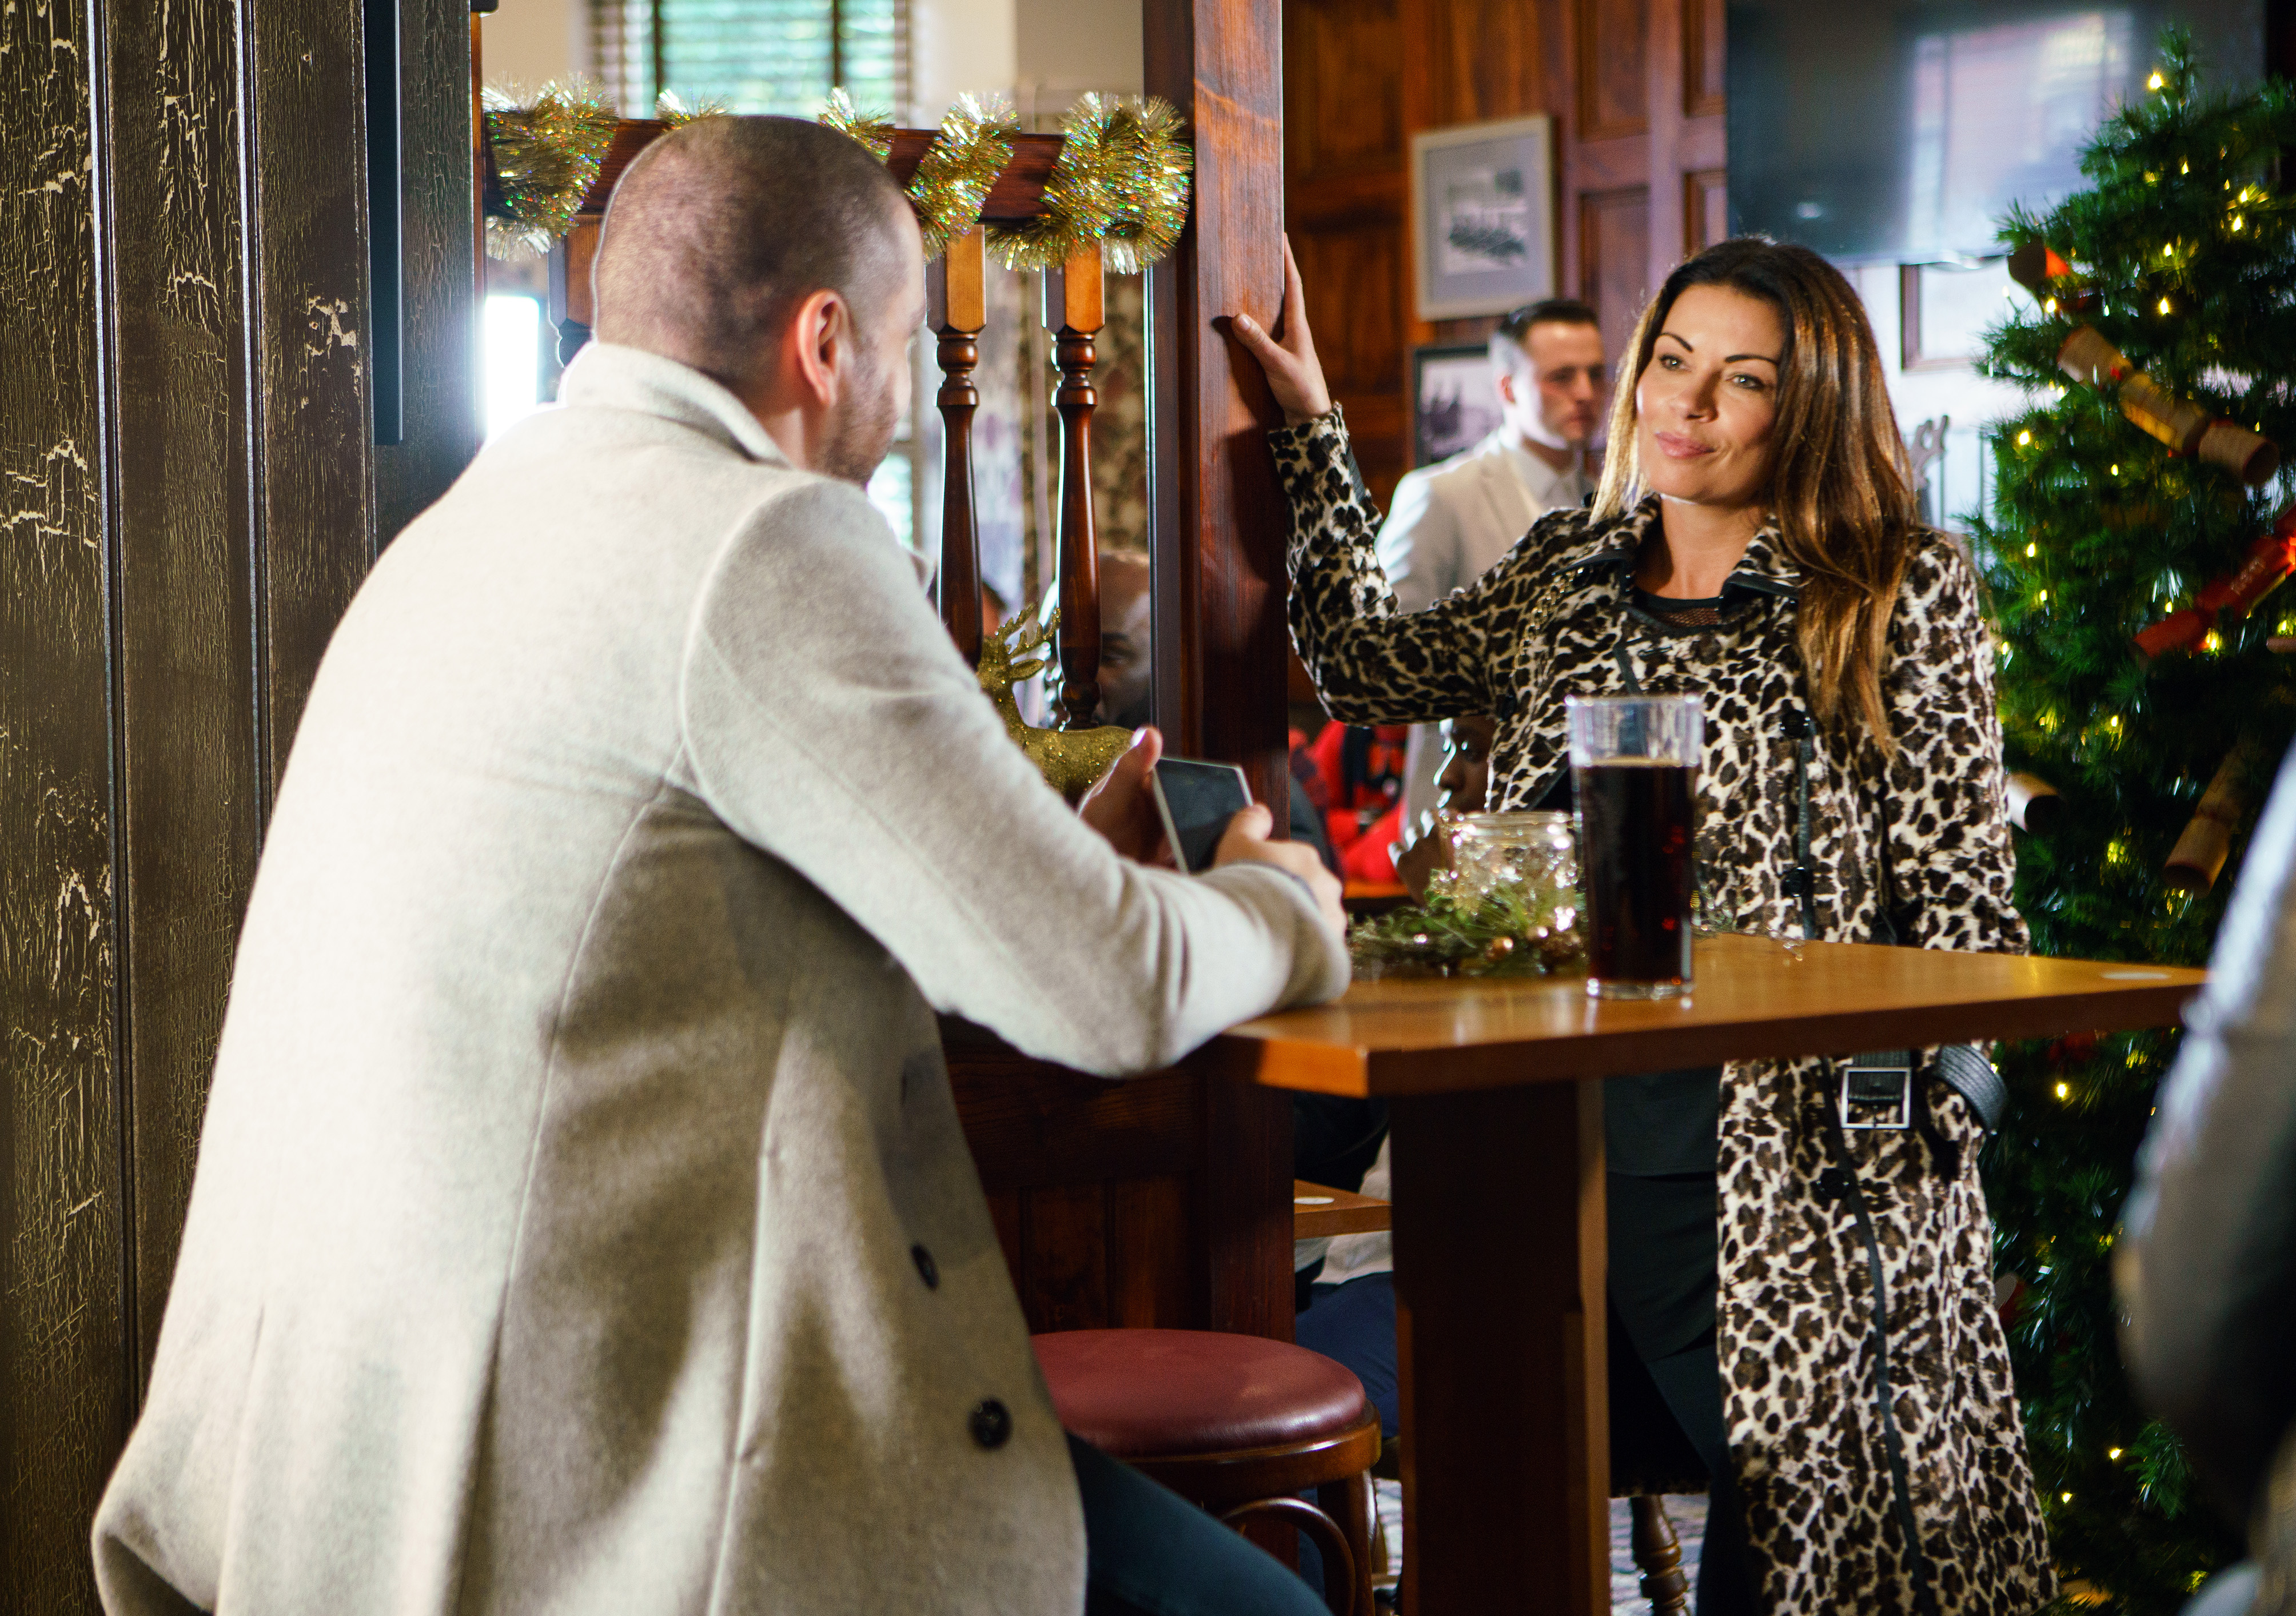 Coronation Street: The highs and lows of Carla Connor as she returns